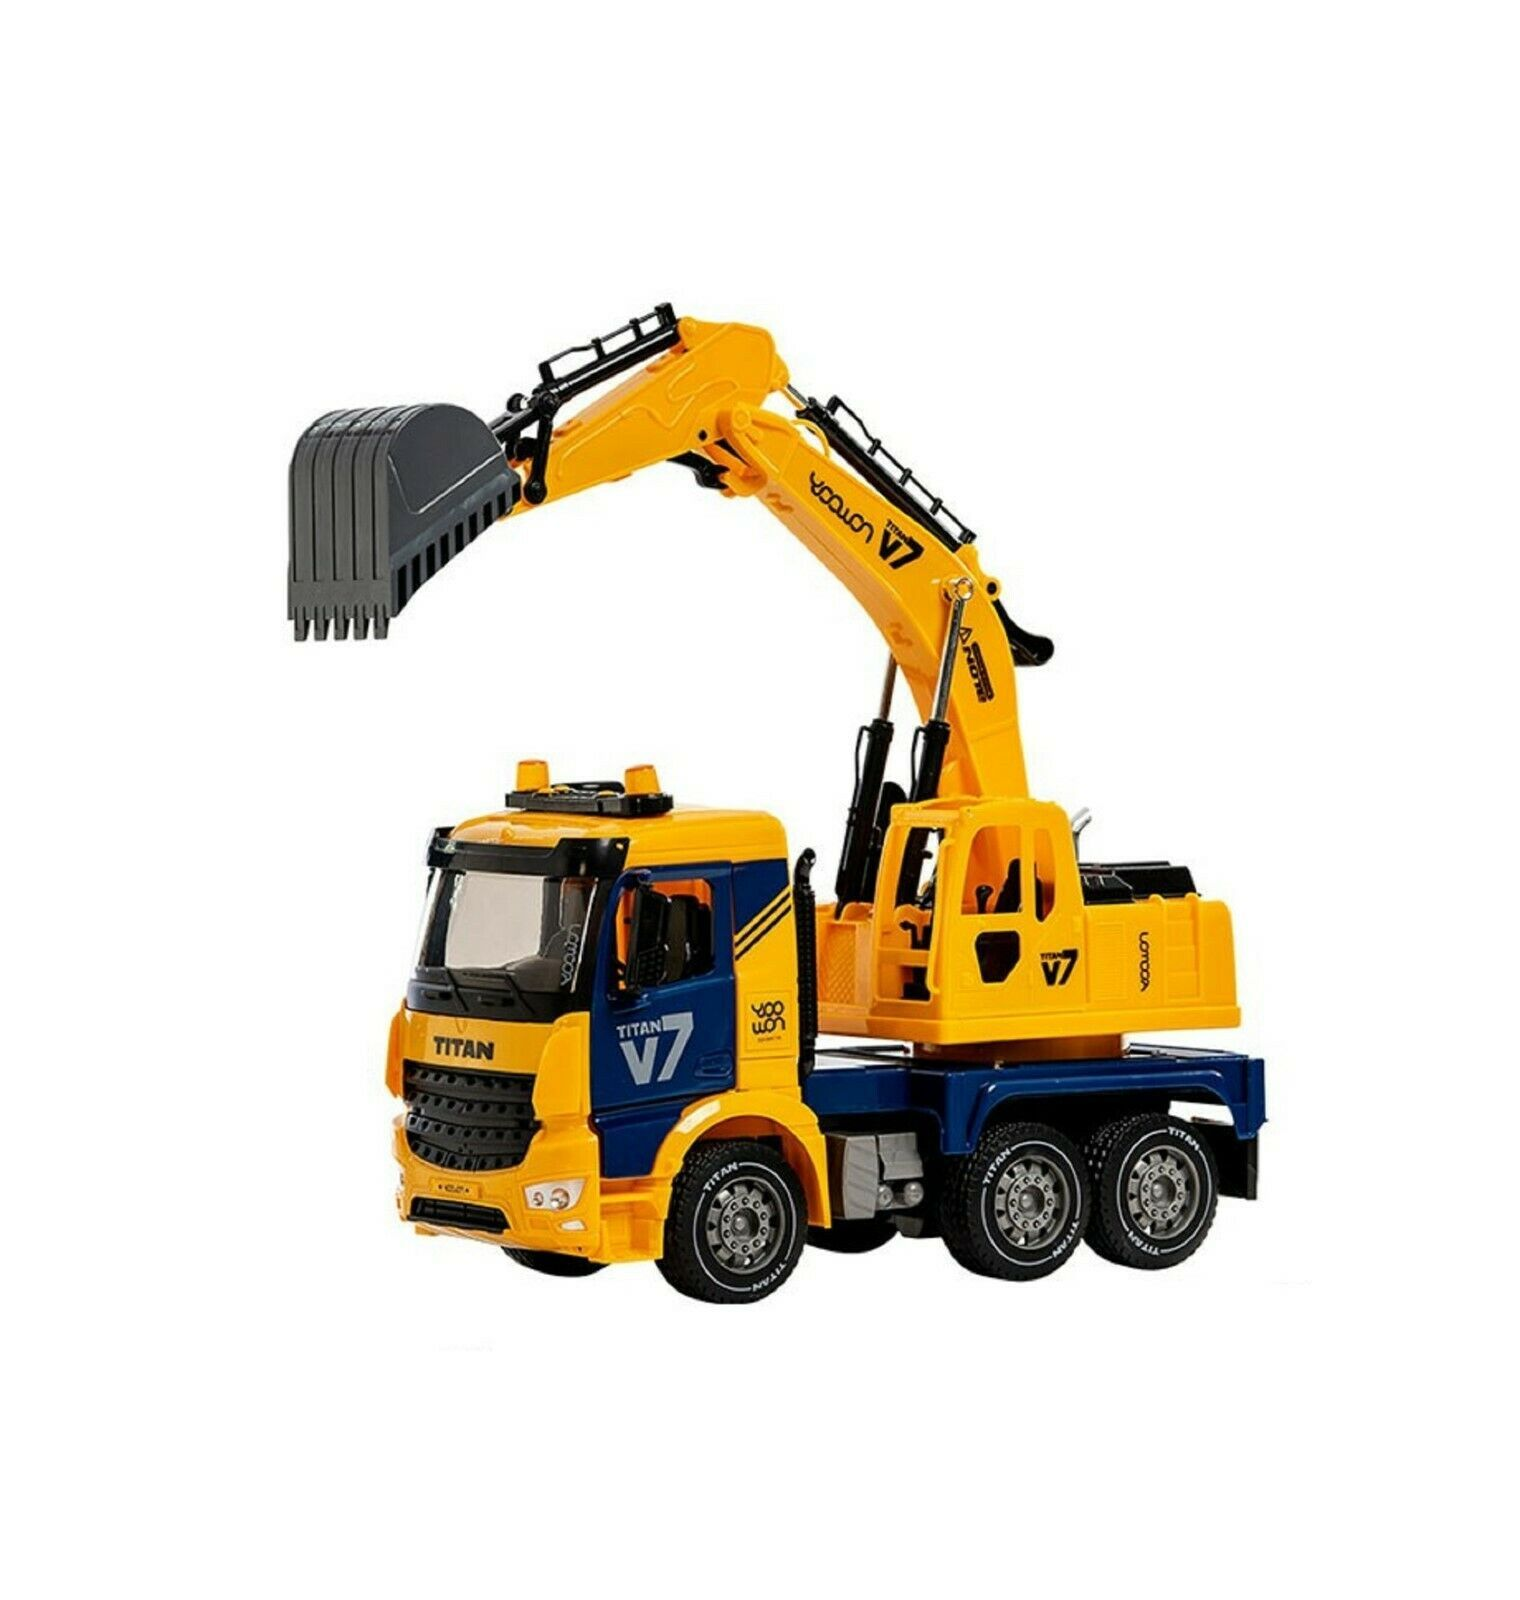 Yoowon Toys Titan V7 Excavator Truck Vehicle Construction Heavy Equipment Toy